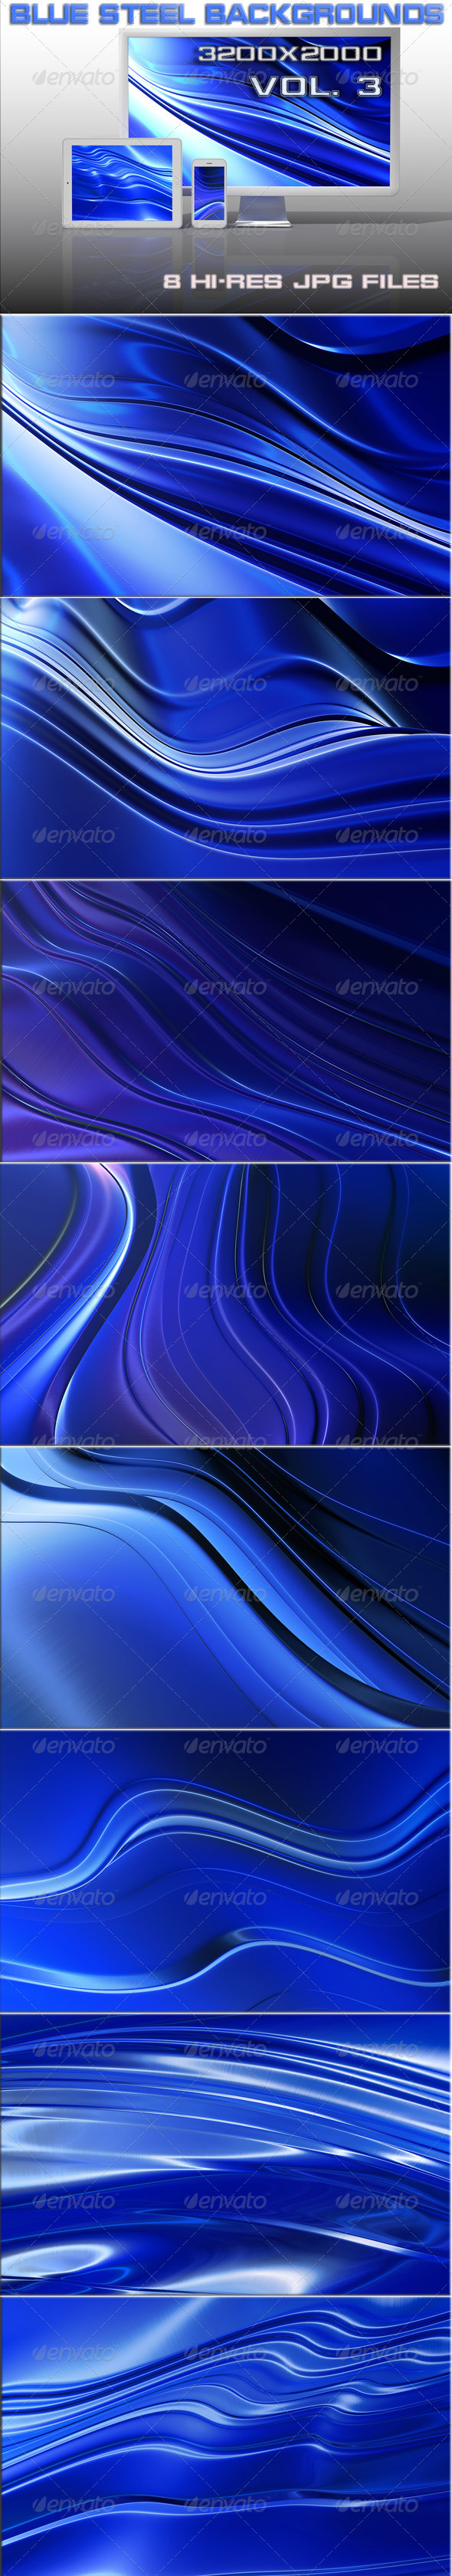 GraphicRiver Techno Blue Steel Backgrounds 6531177